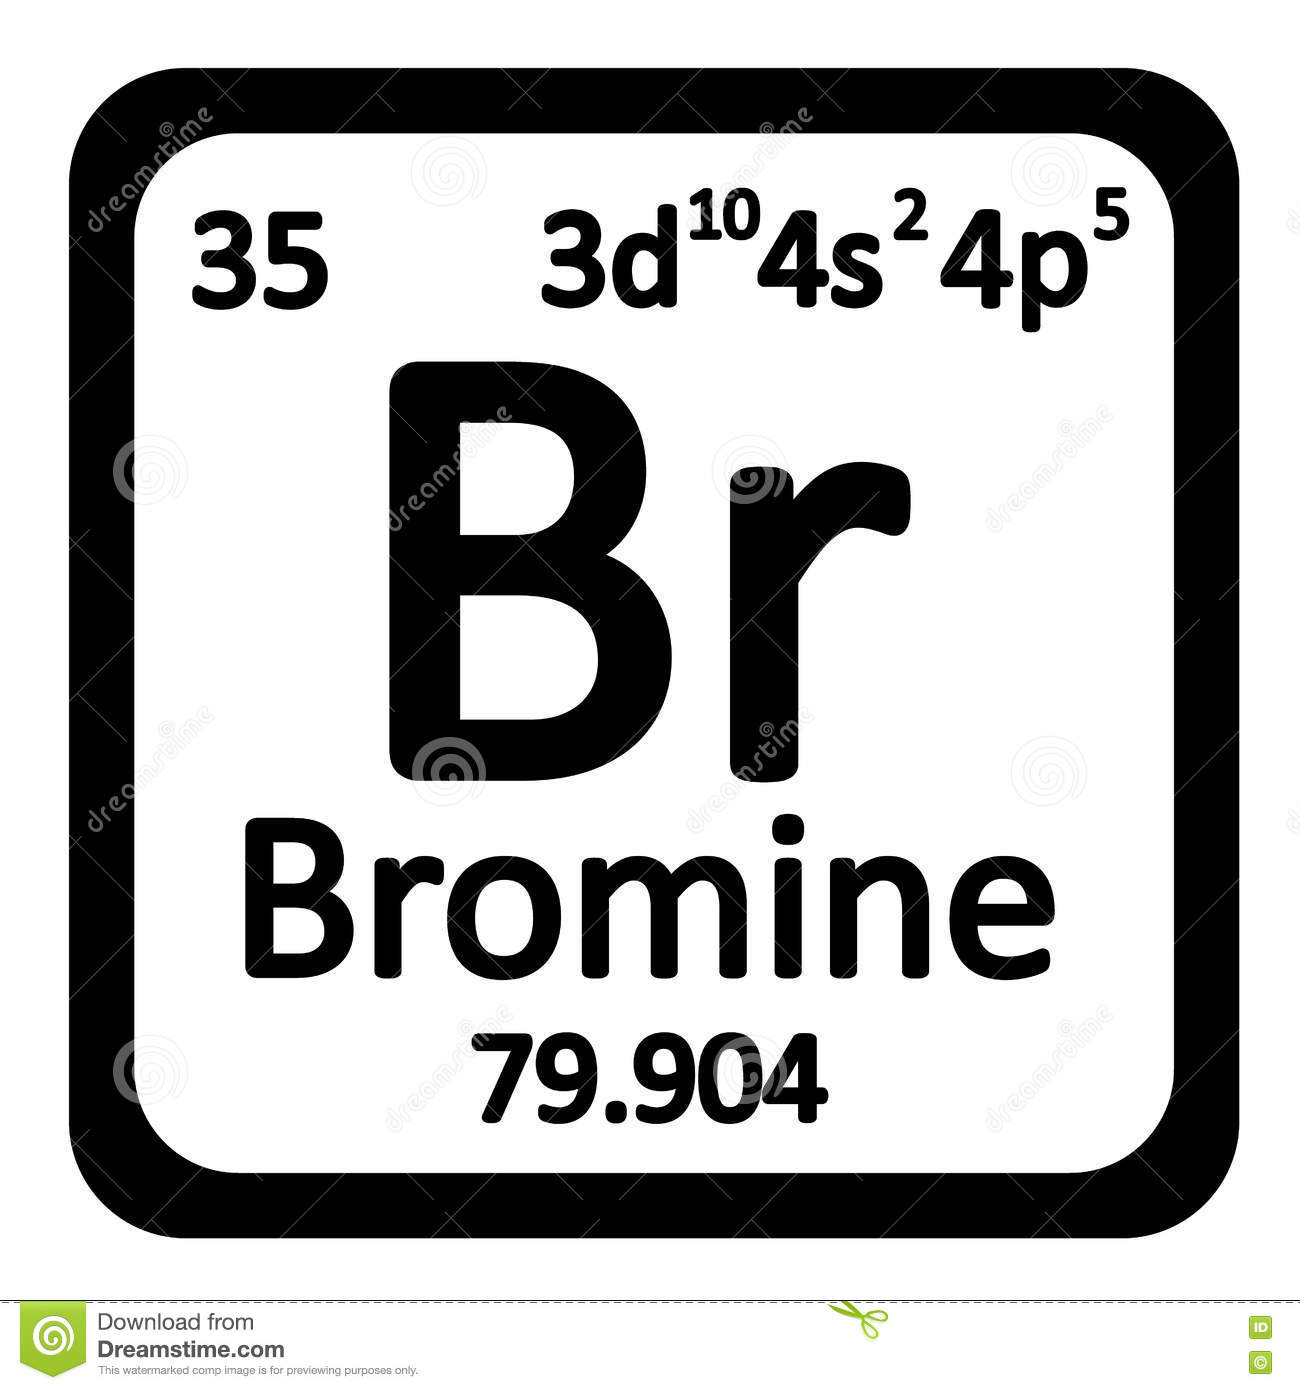 Periodic table element bromine icon stock illustration image royalty free illustration download periodic table element bromine gamestrikefo Gallery